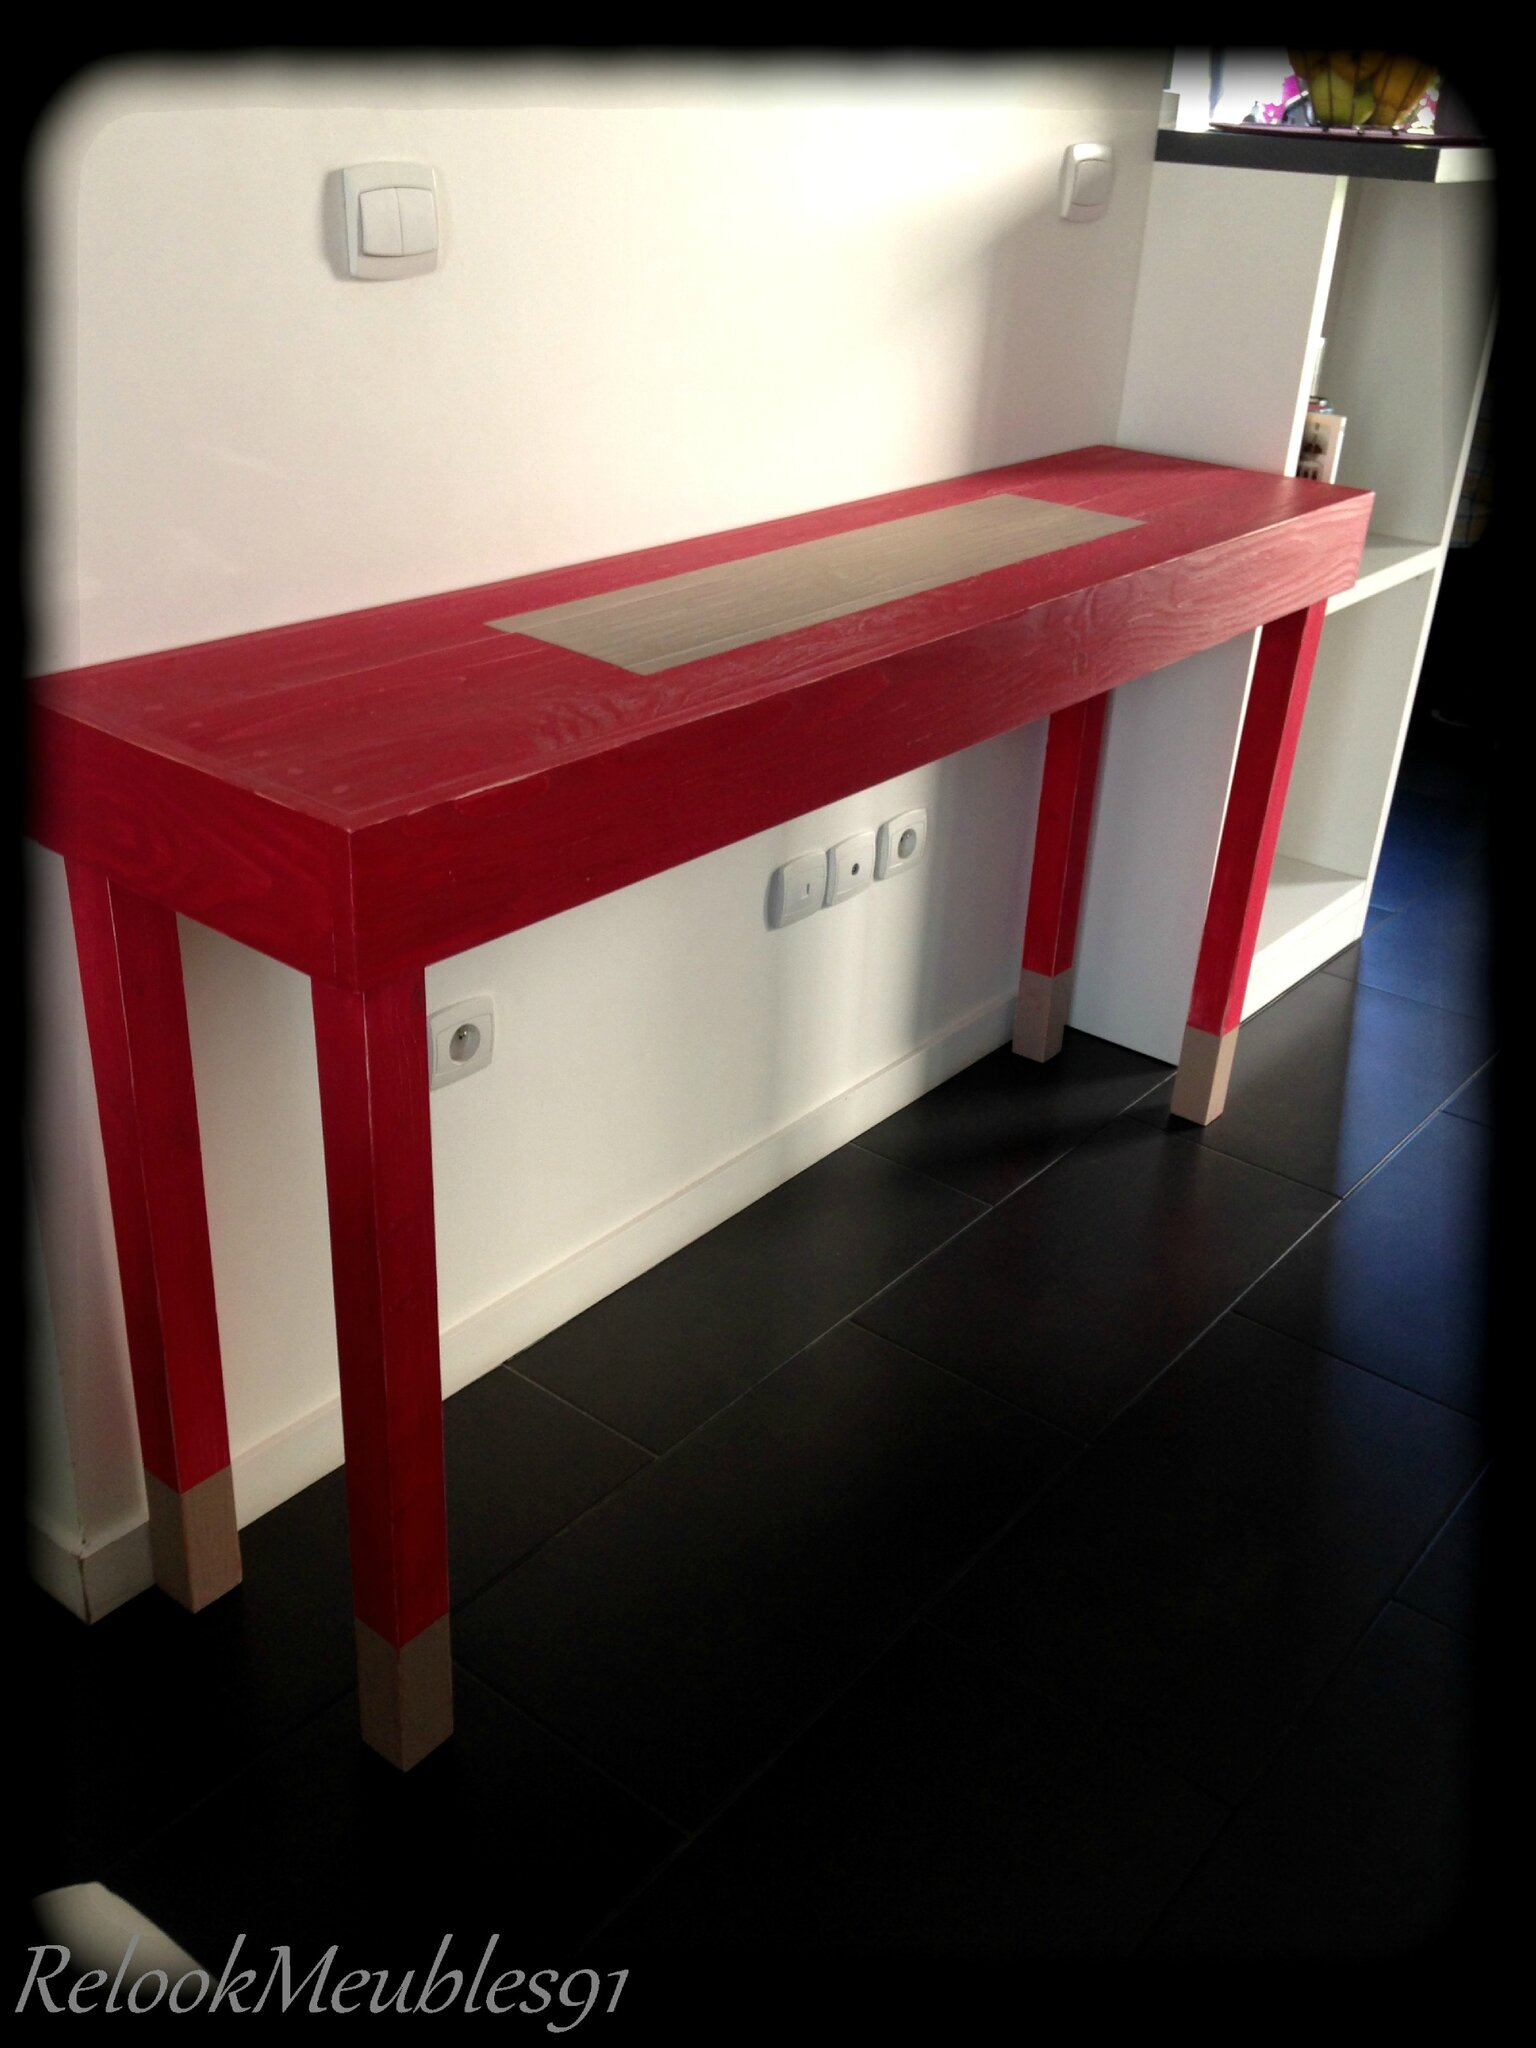 Console rouge chinois relookmeubles91 for Console meuble chinois